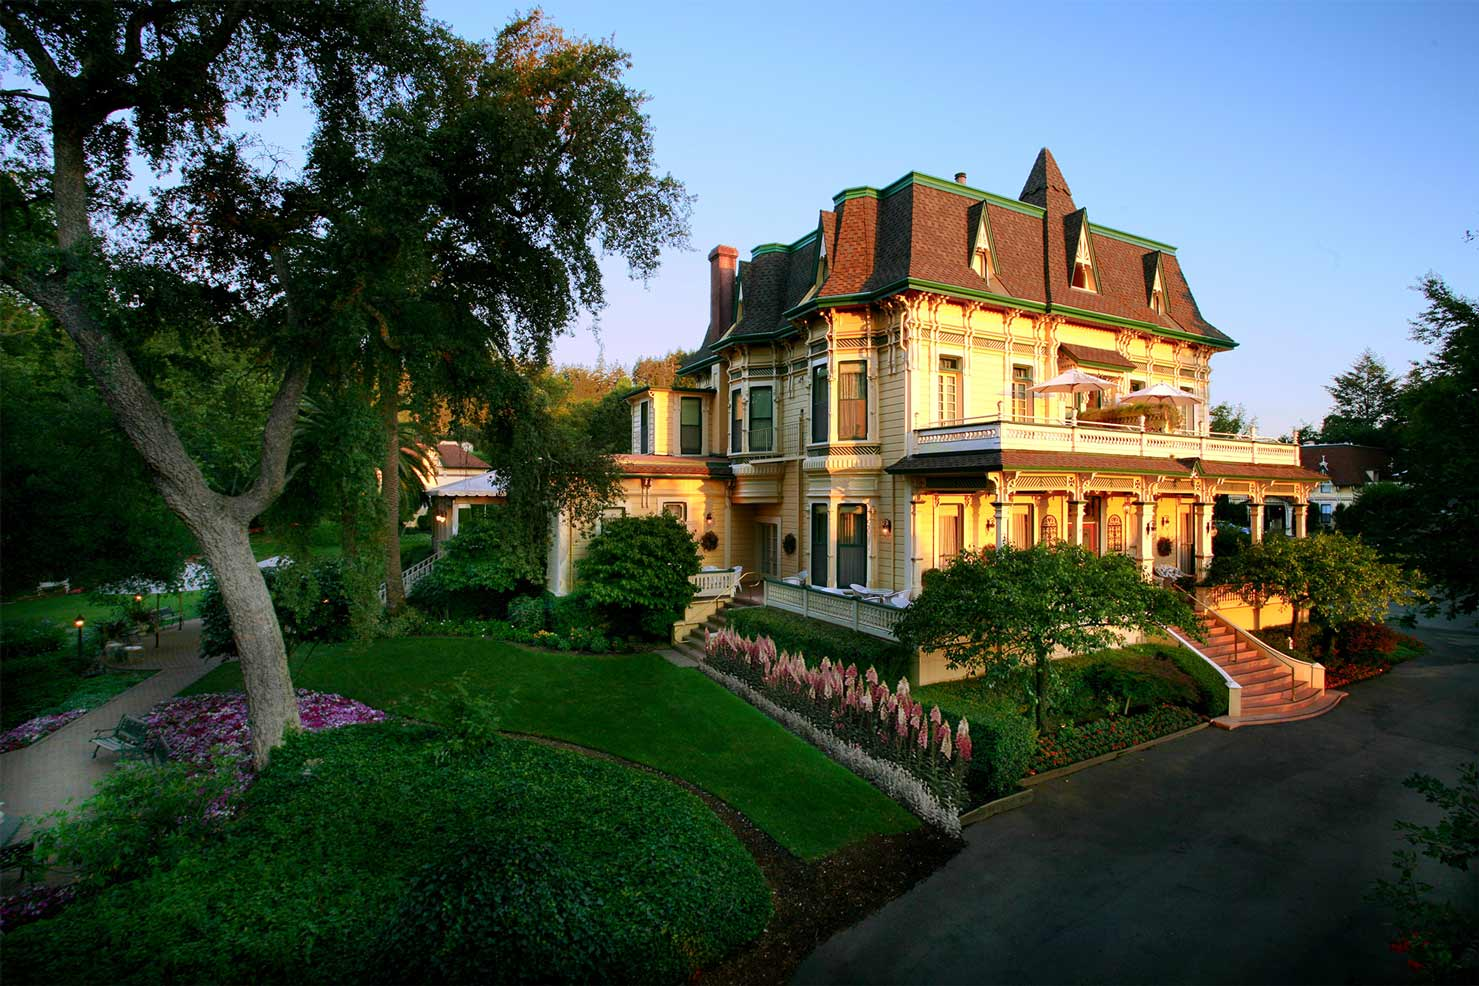 Madrona Manor in Sonoma County